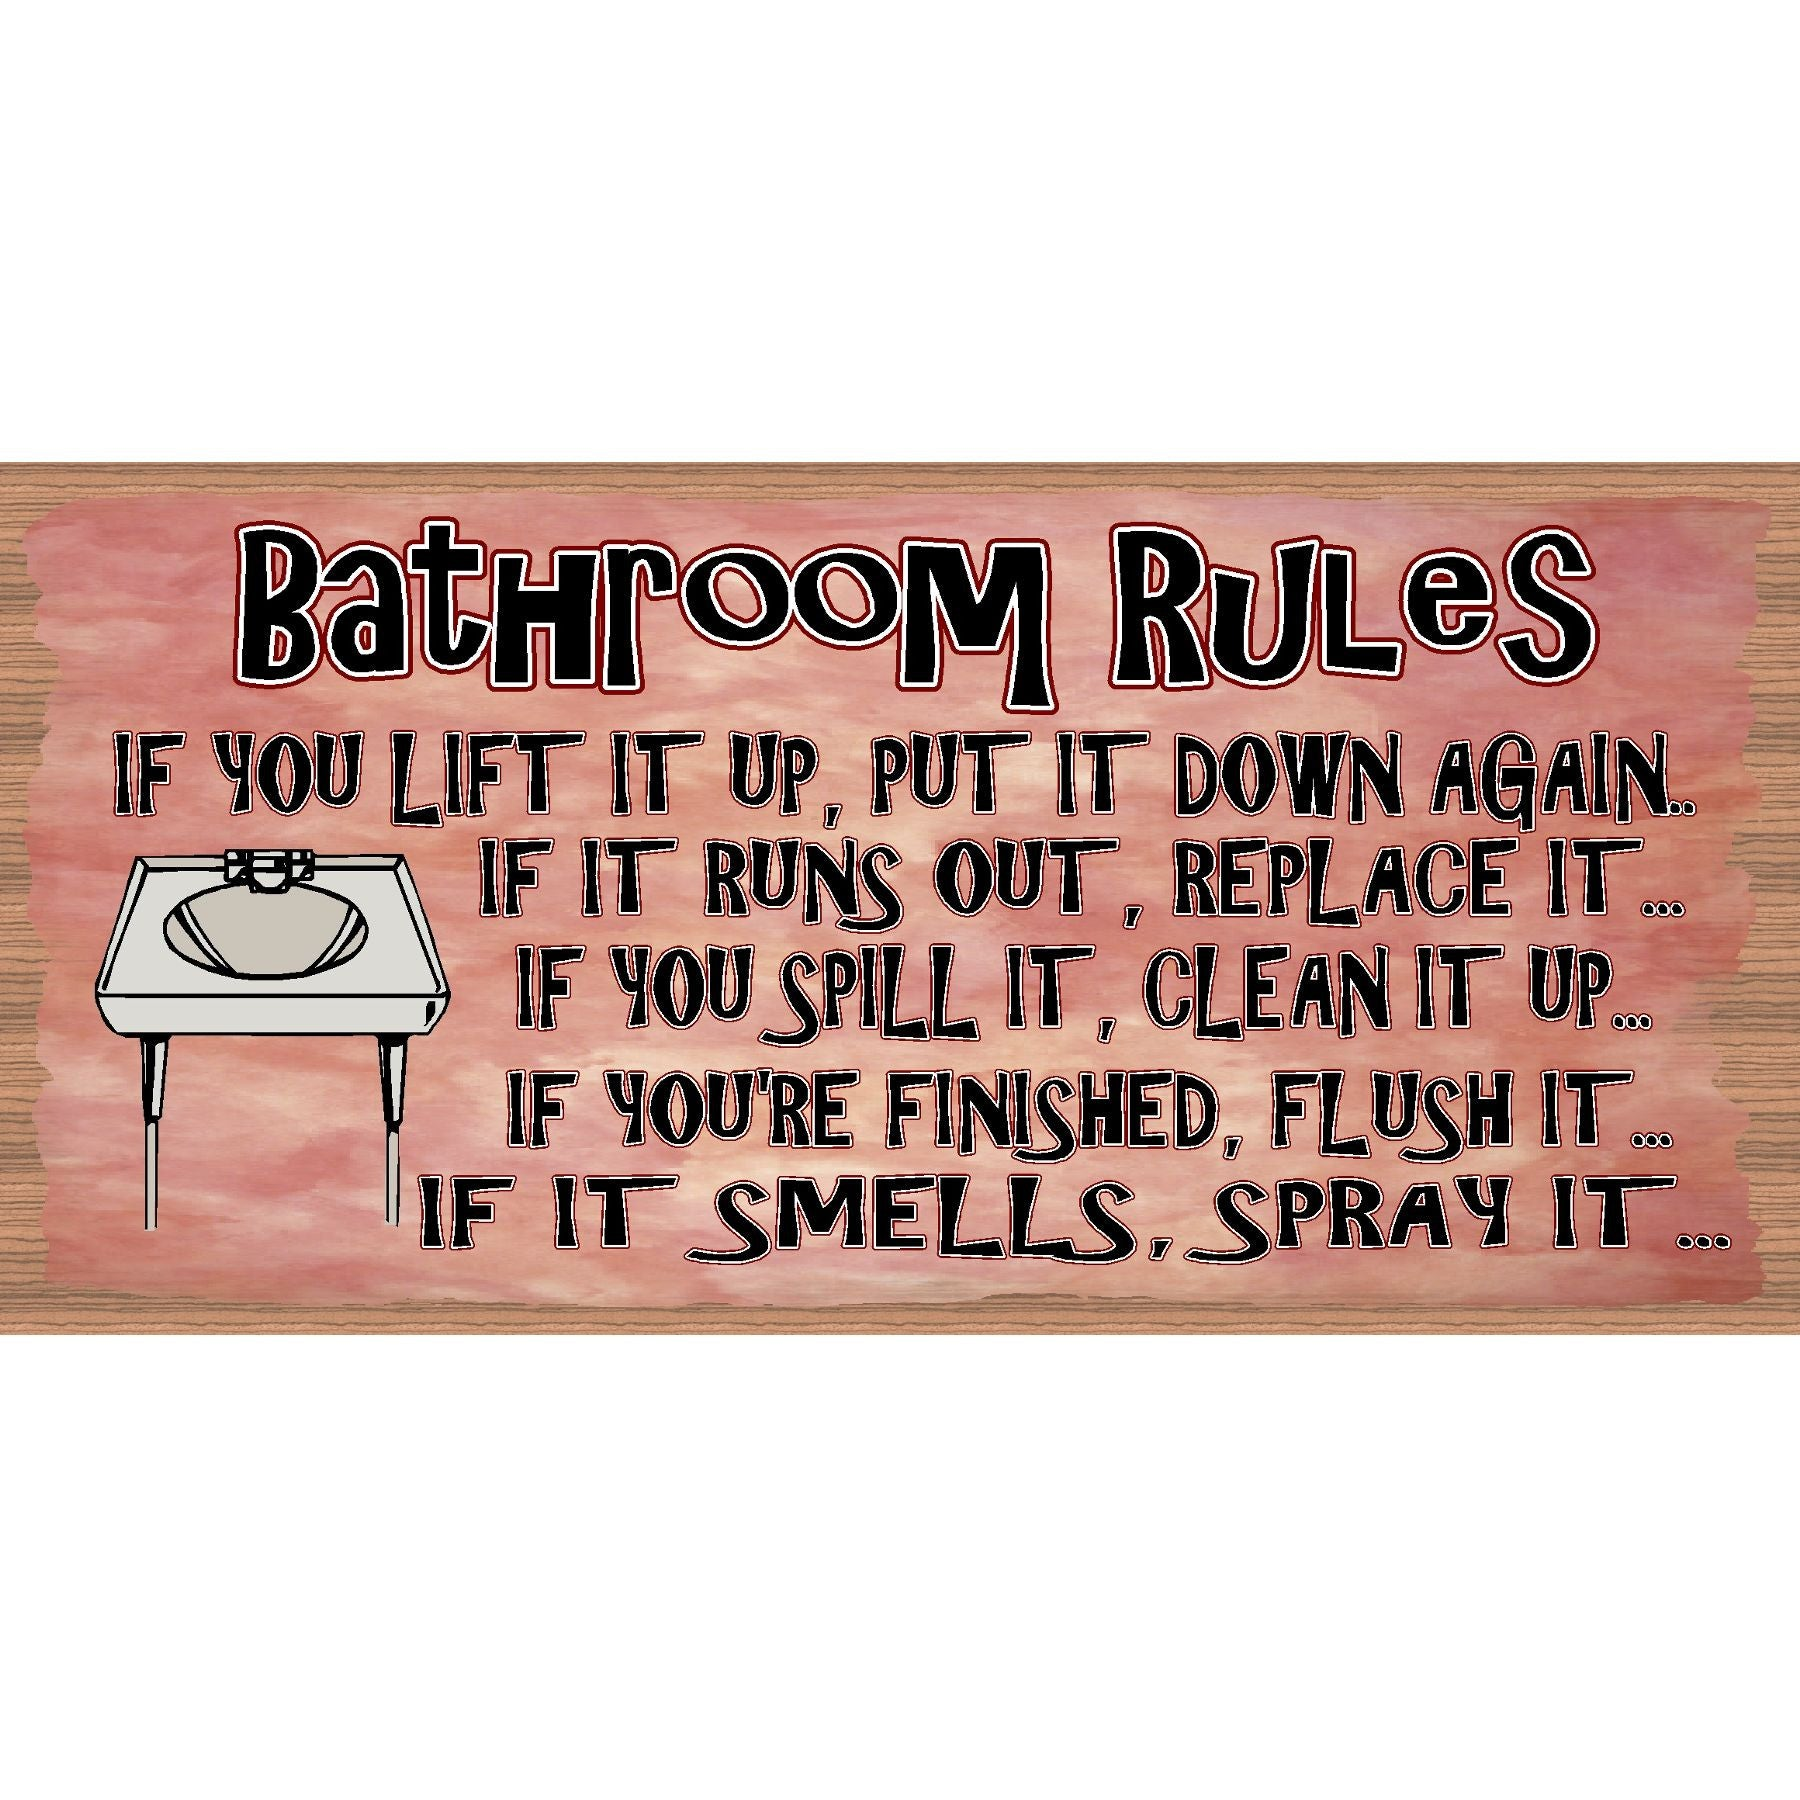 Bathroom Wood Signs - Bathroom Rules plaque- GS 754 -Bathroom Rules Plaque